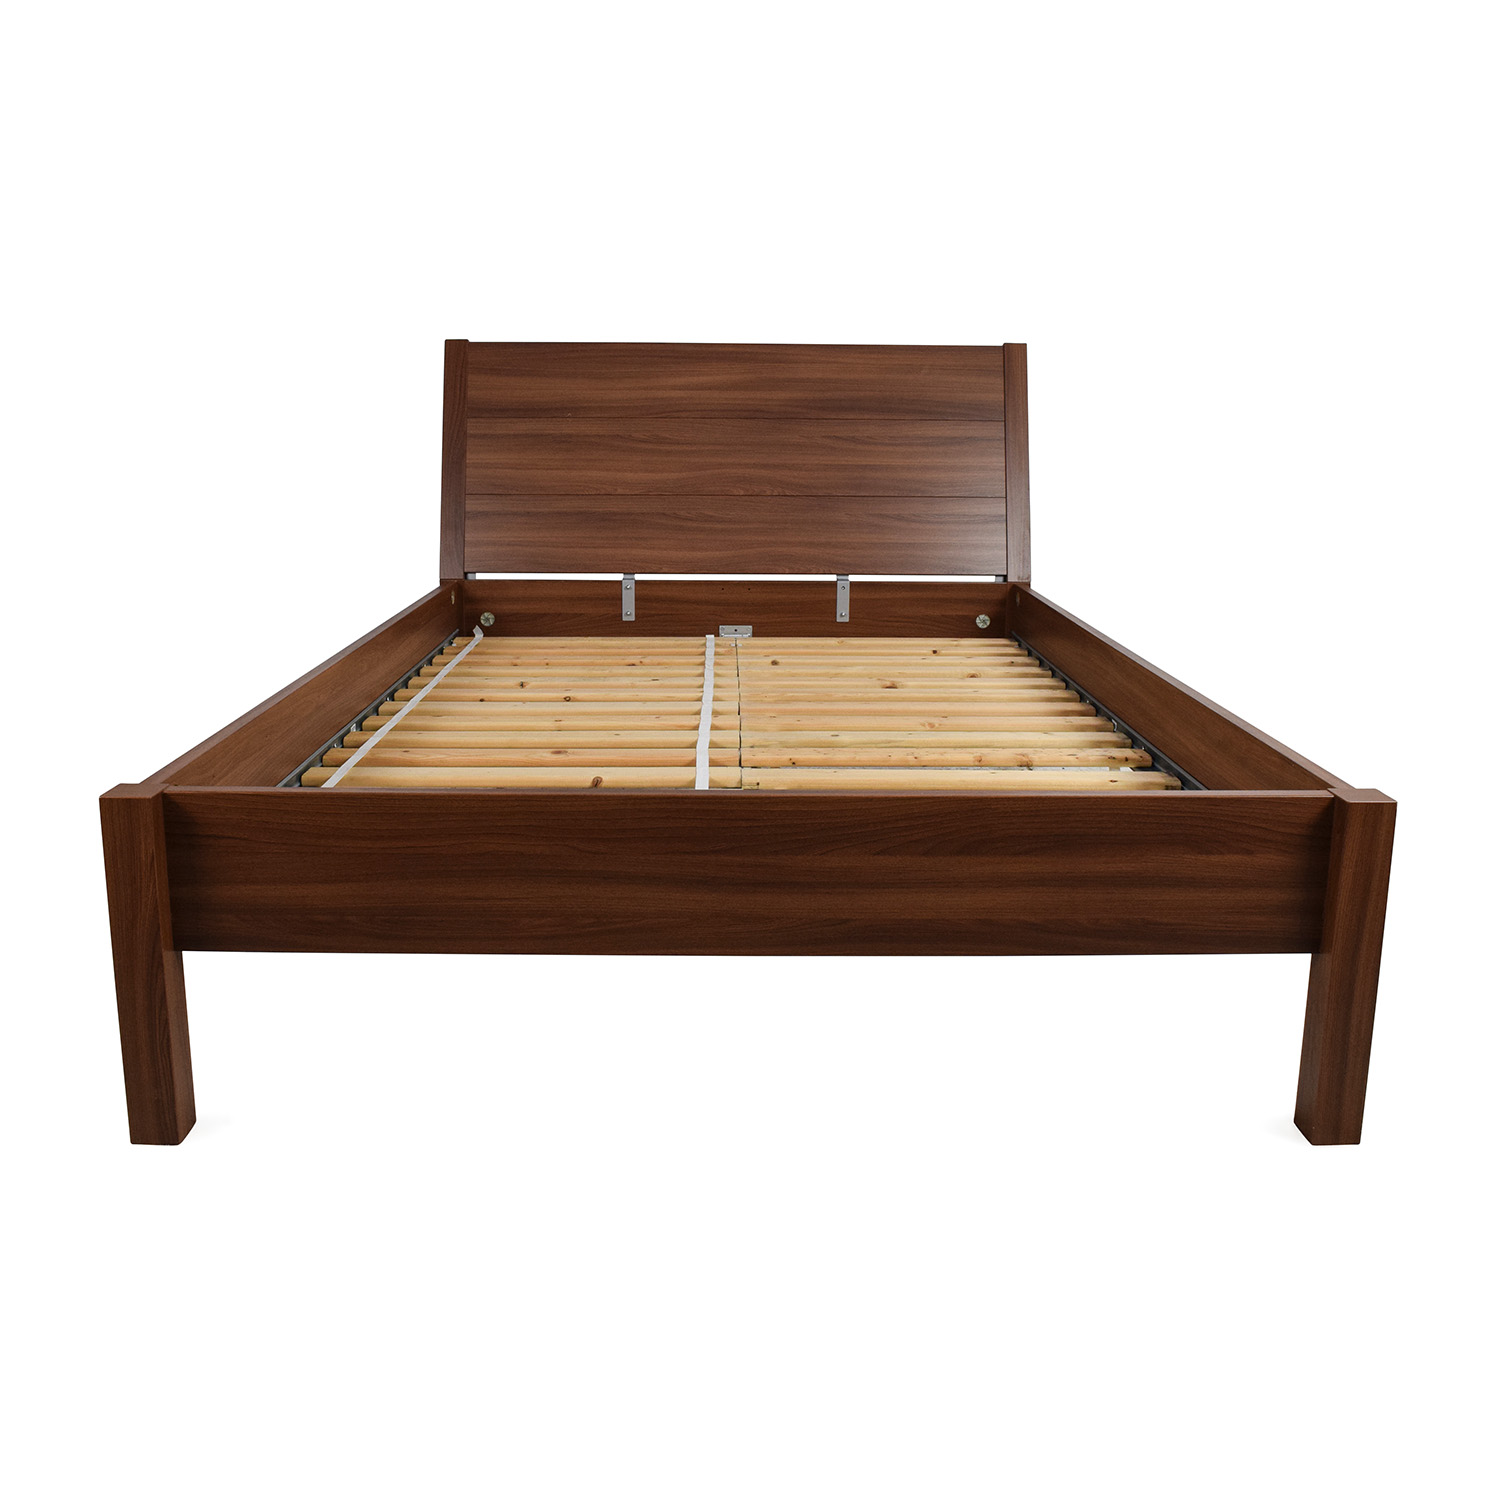 67% OFF - IKEA IKEA Full Size Brown Bed Frame / Beds